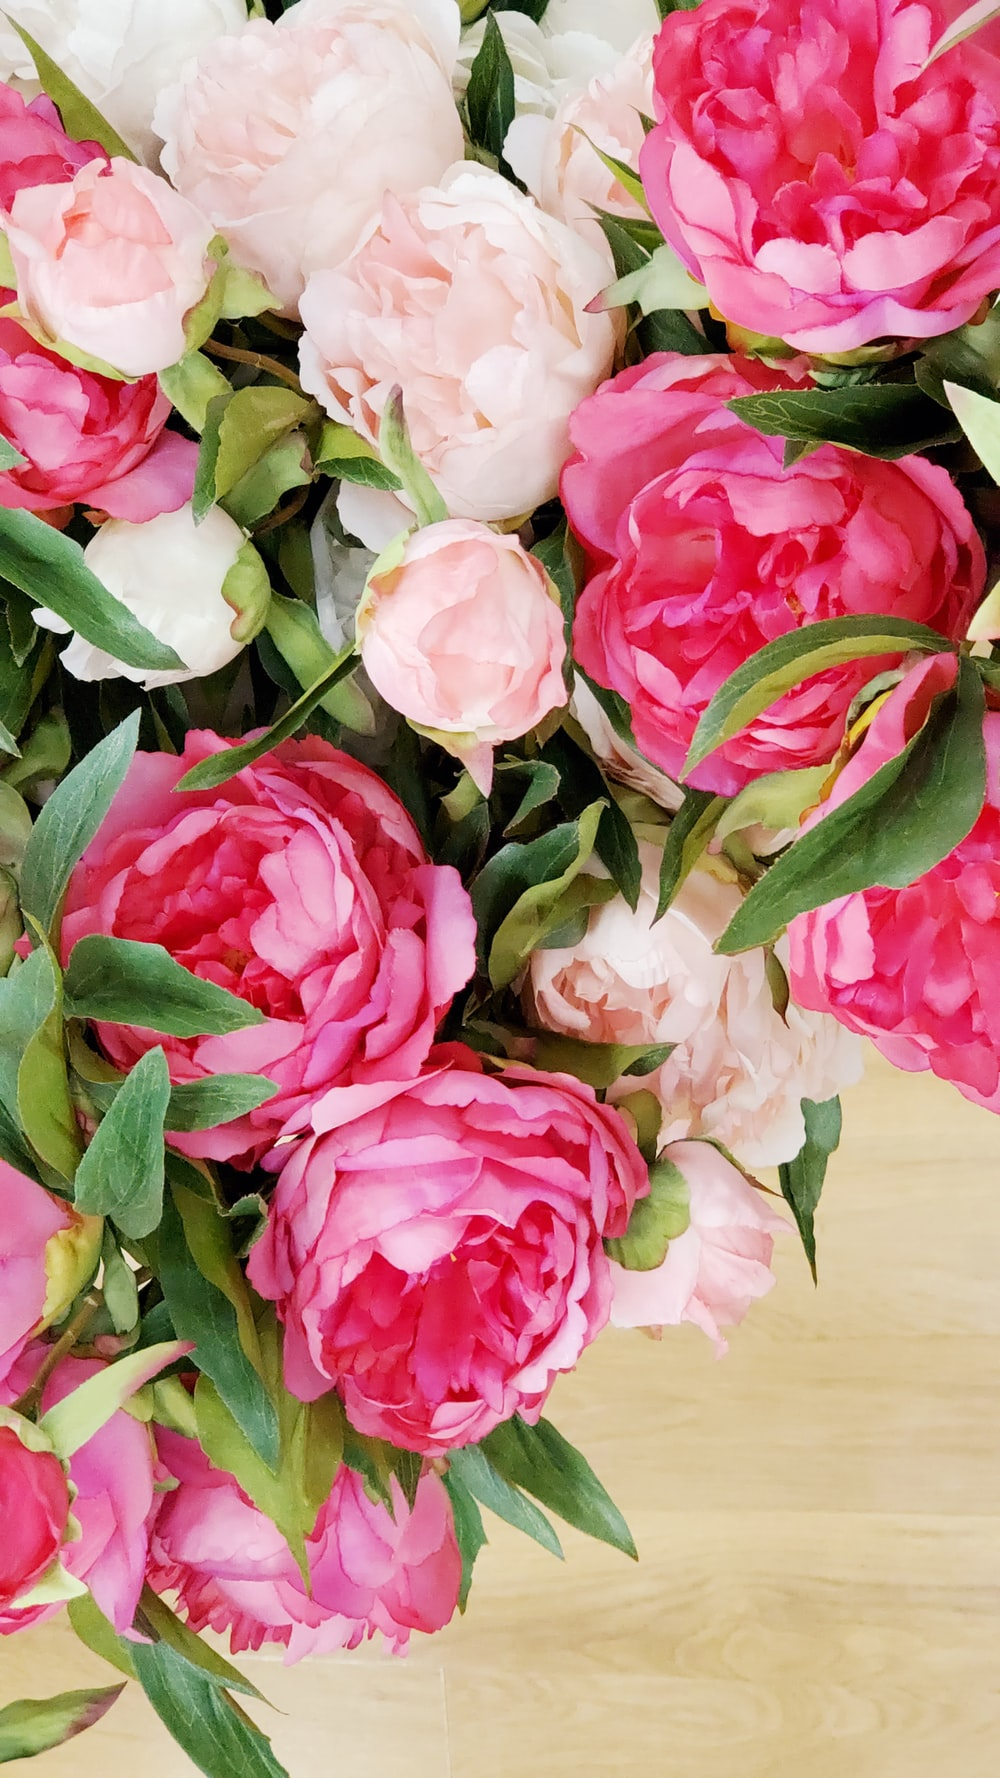 pink and white roses on brown wooden table